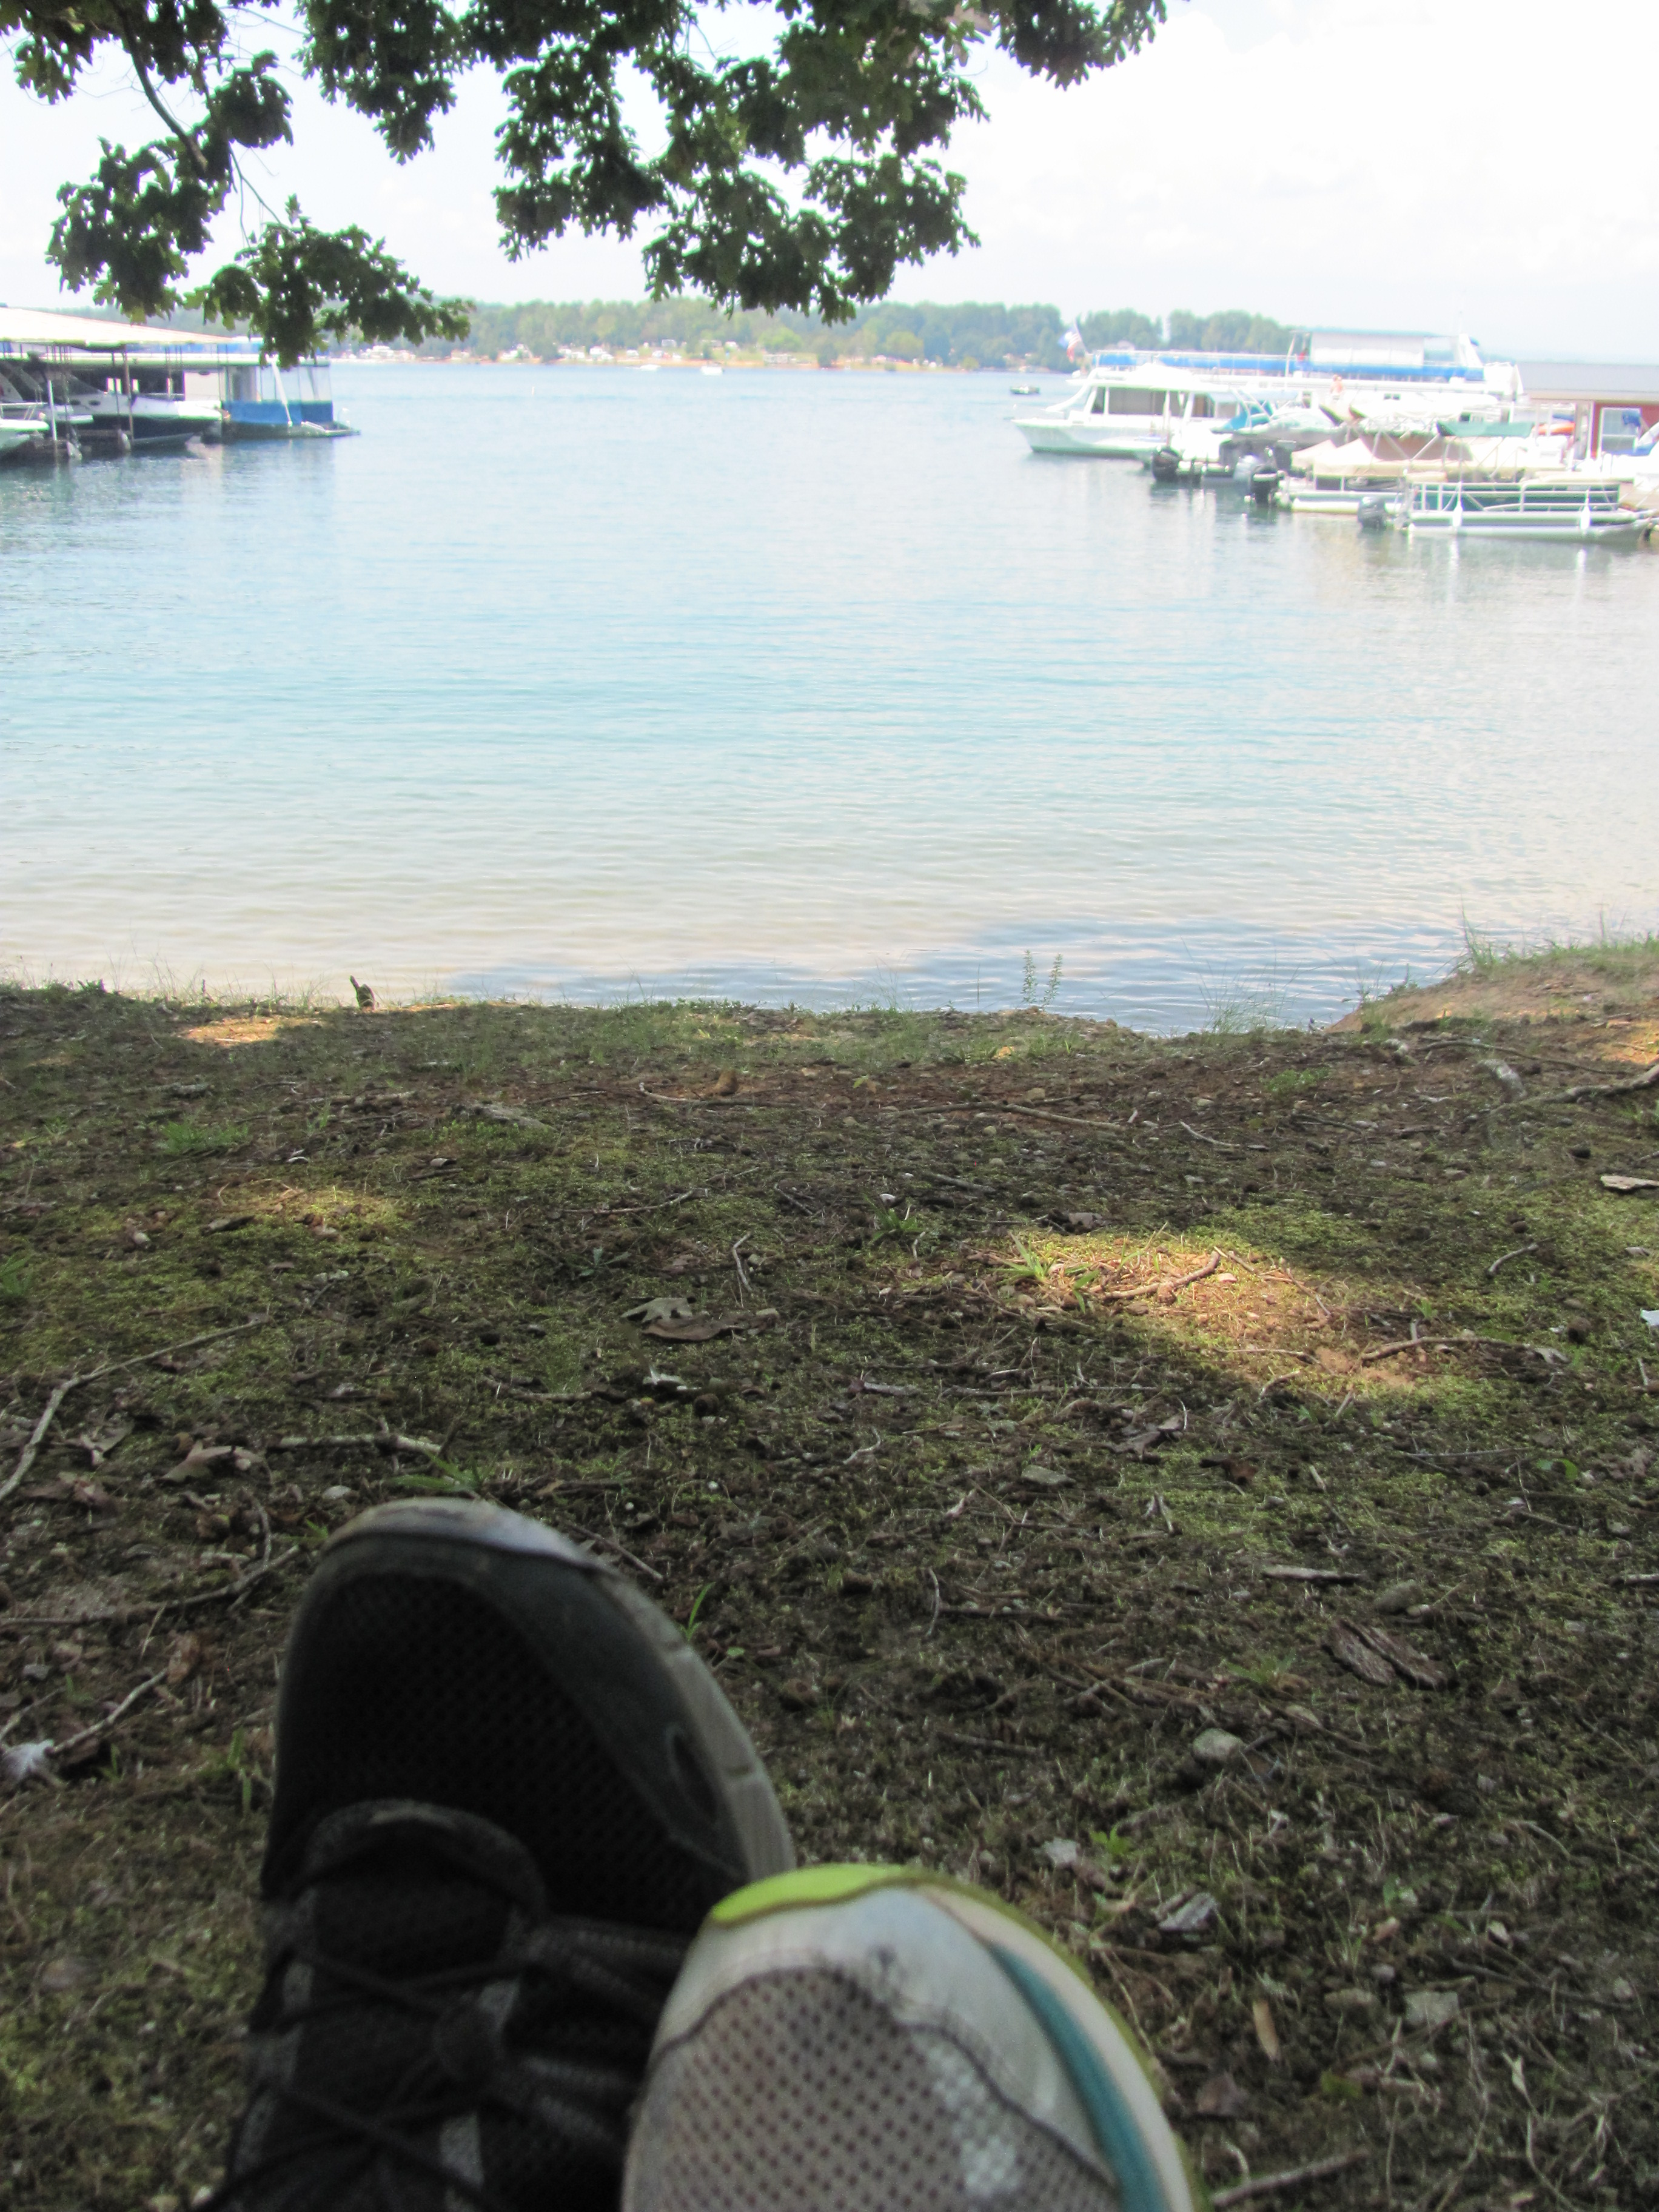 Our Travel Thirsty Toes at Lake Keowee S.C. waiting for the Eclipse August 21, 2017